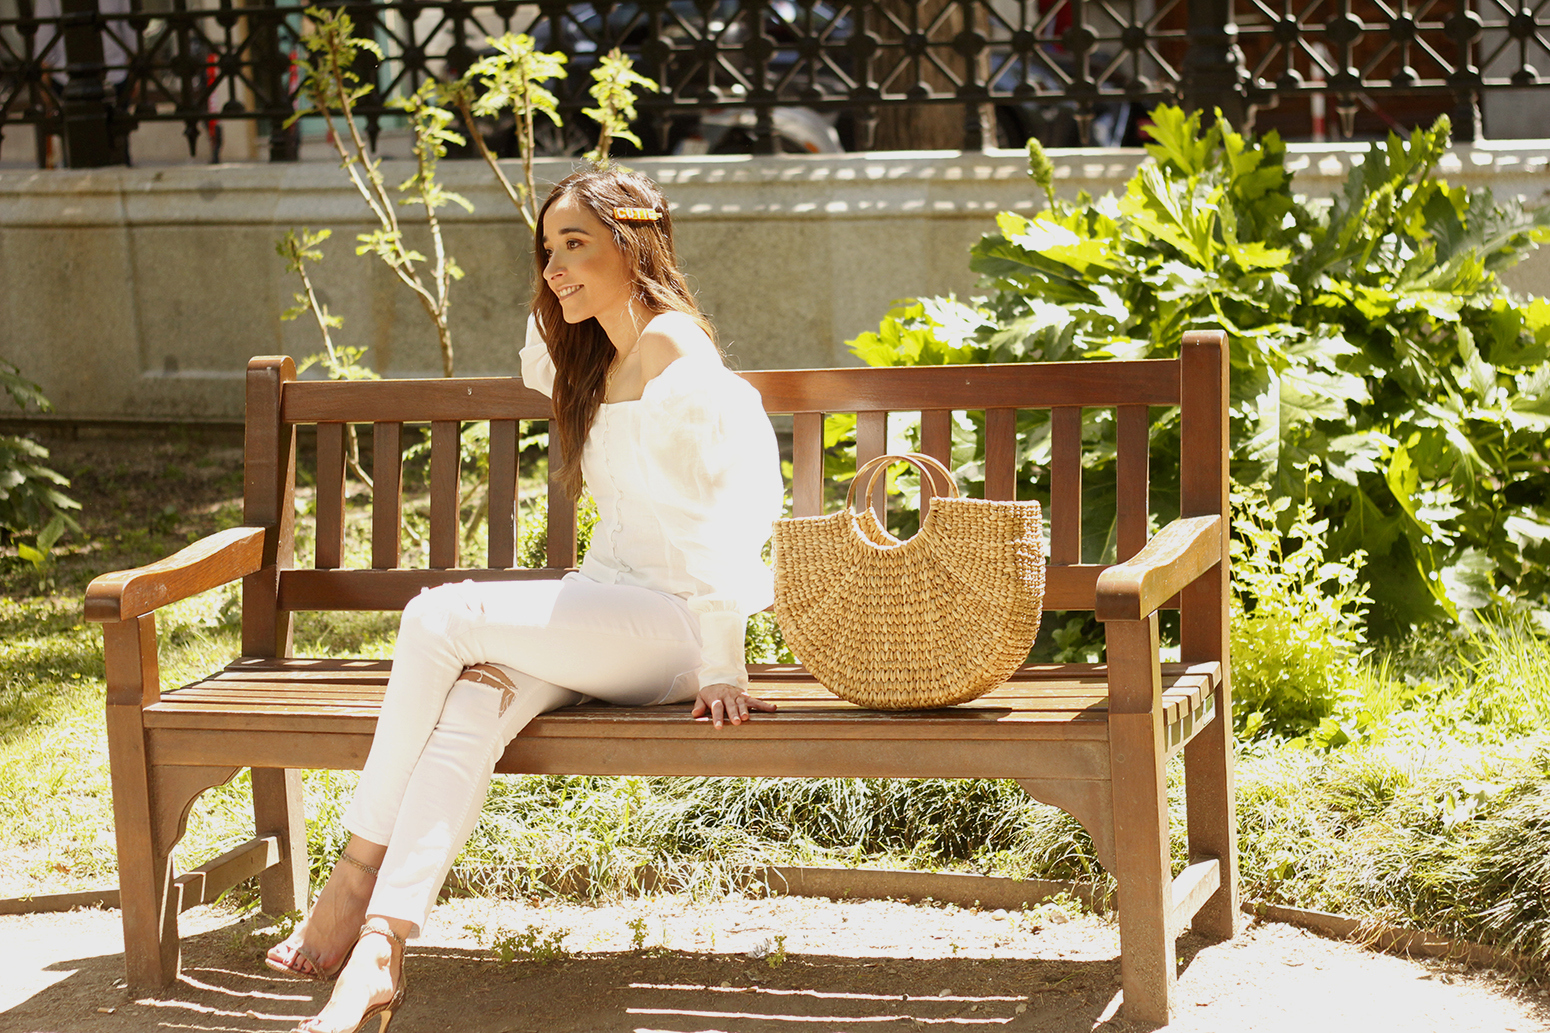 White Linen Top jeansstraw bag street style outfit 201910